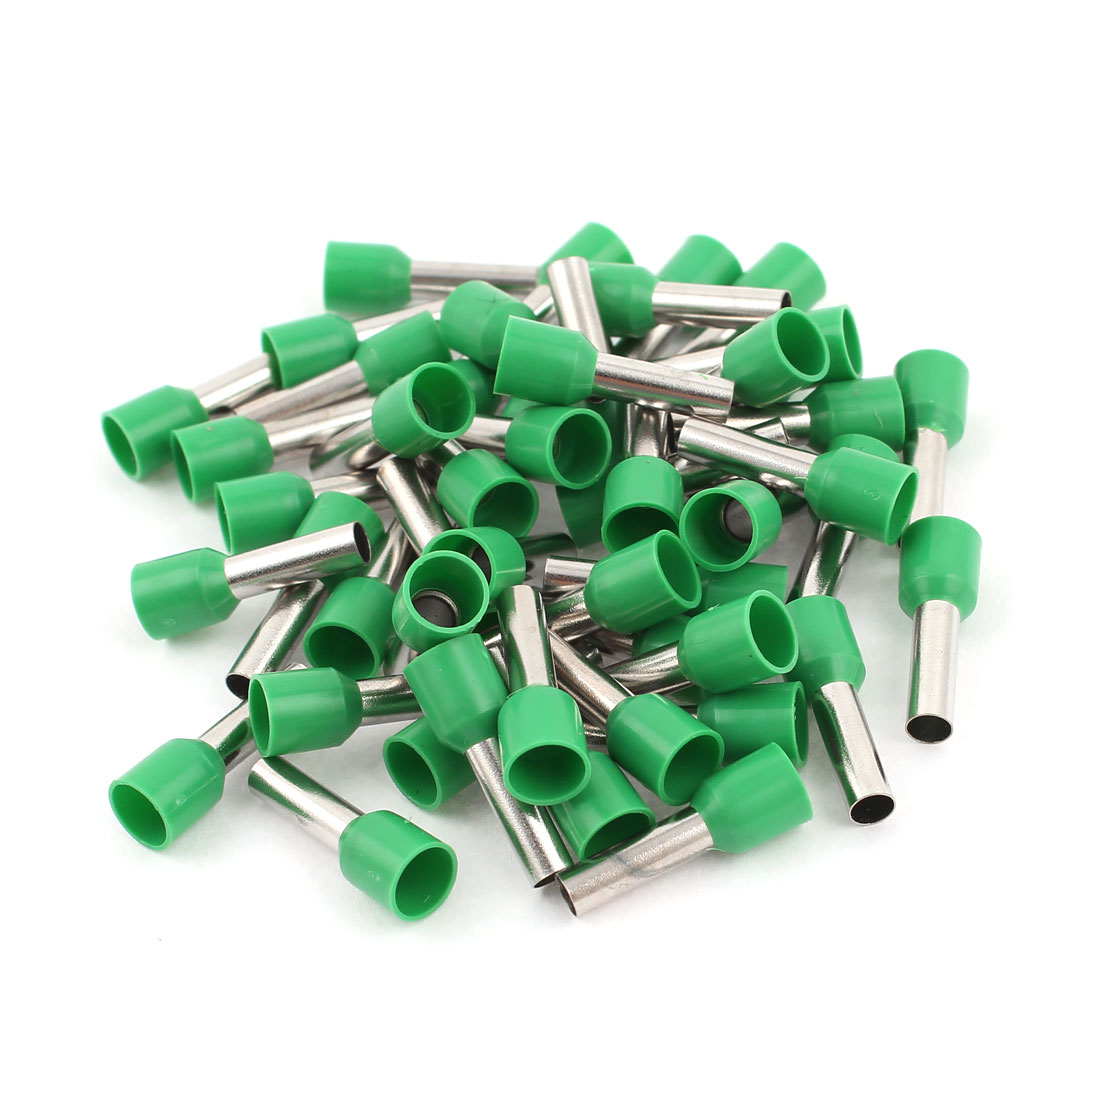 50 Pcs 6mm2 Crimp Cord Wire End Terminal Insulated Bootlace Ferrule Connector Green